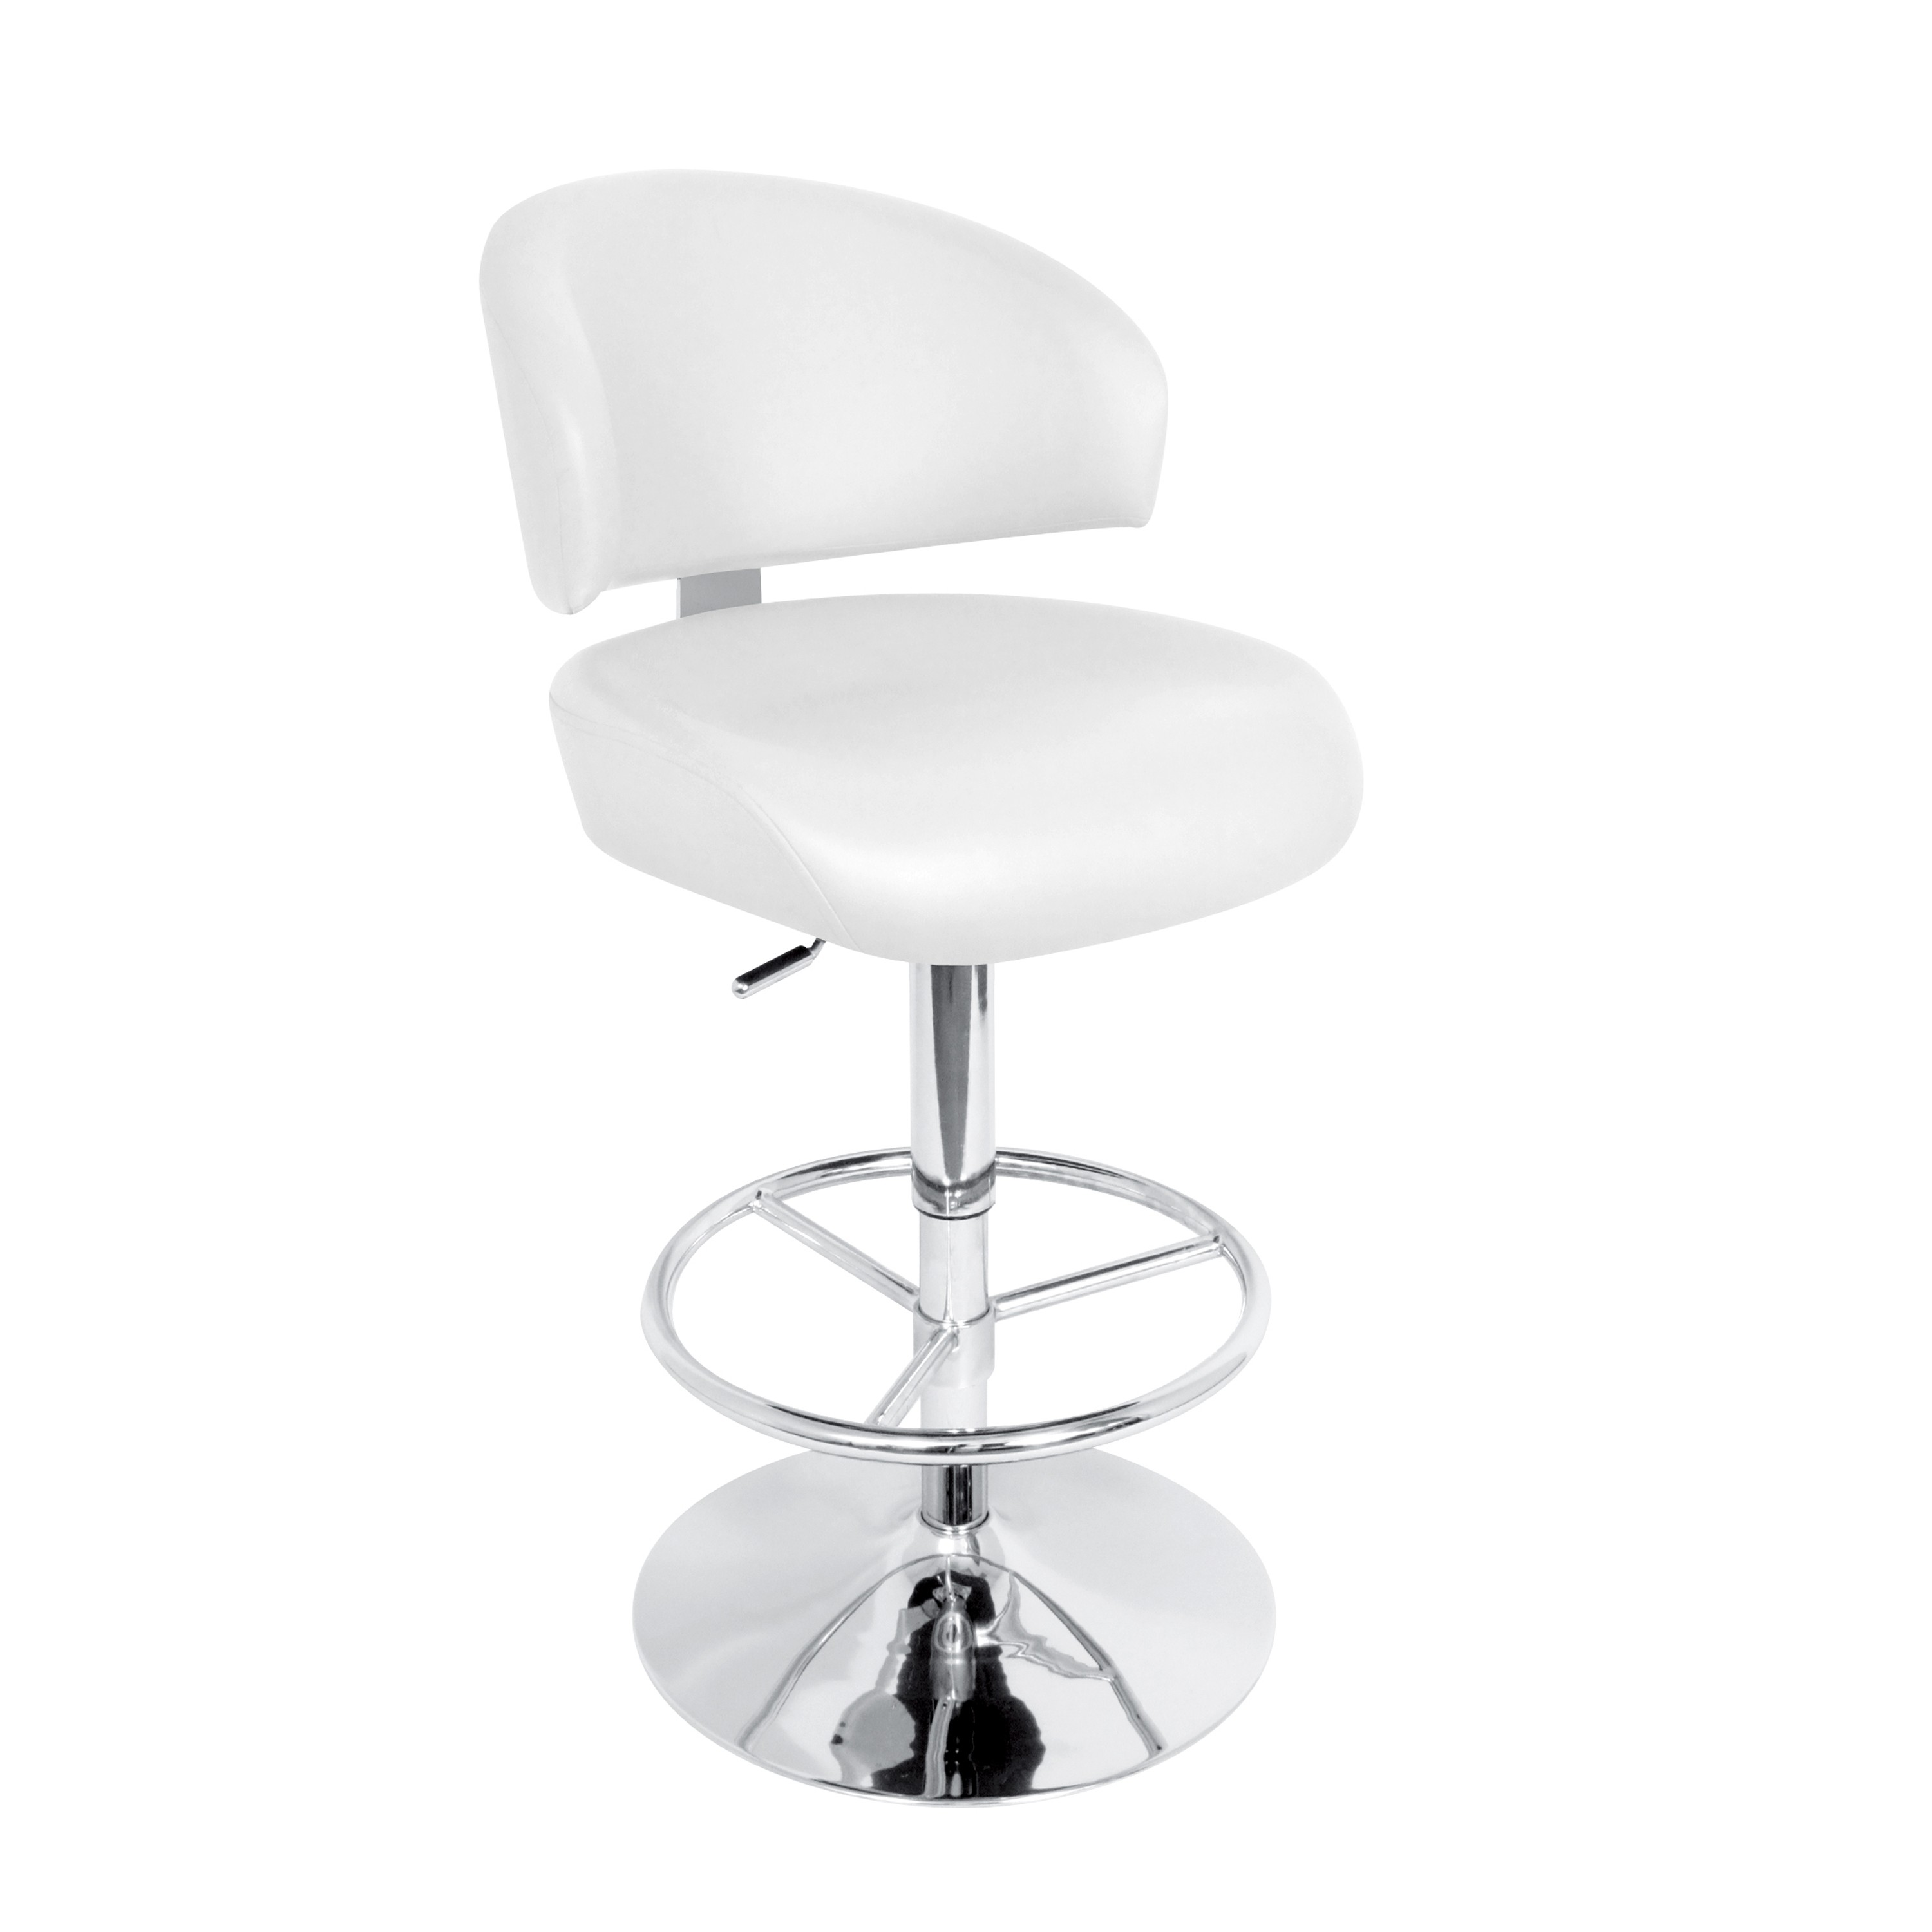 Astounding Regent Bar Stool Ale Barstool Upholstered Leatherette Alphanode Cool Chair Designs And Ideas Alphanodeonline